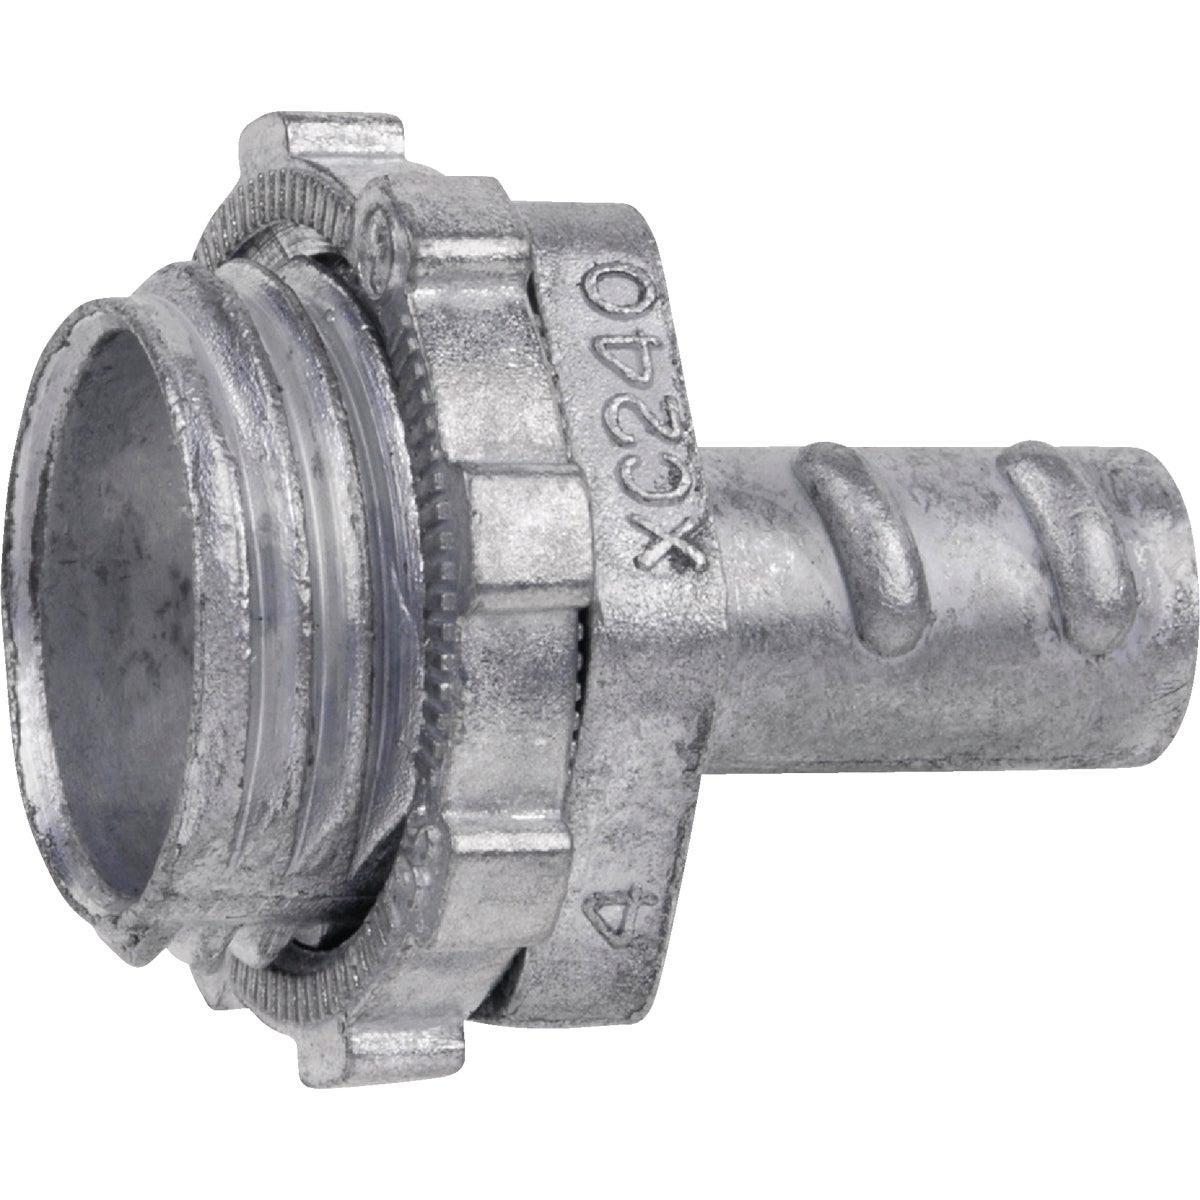 "5PC 3/8"" FLEX CONNECTOR - XC2405 by Thomas & Betts"